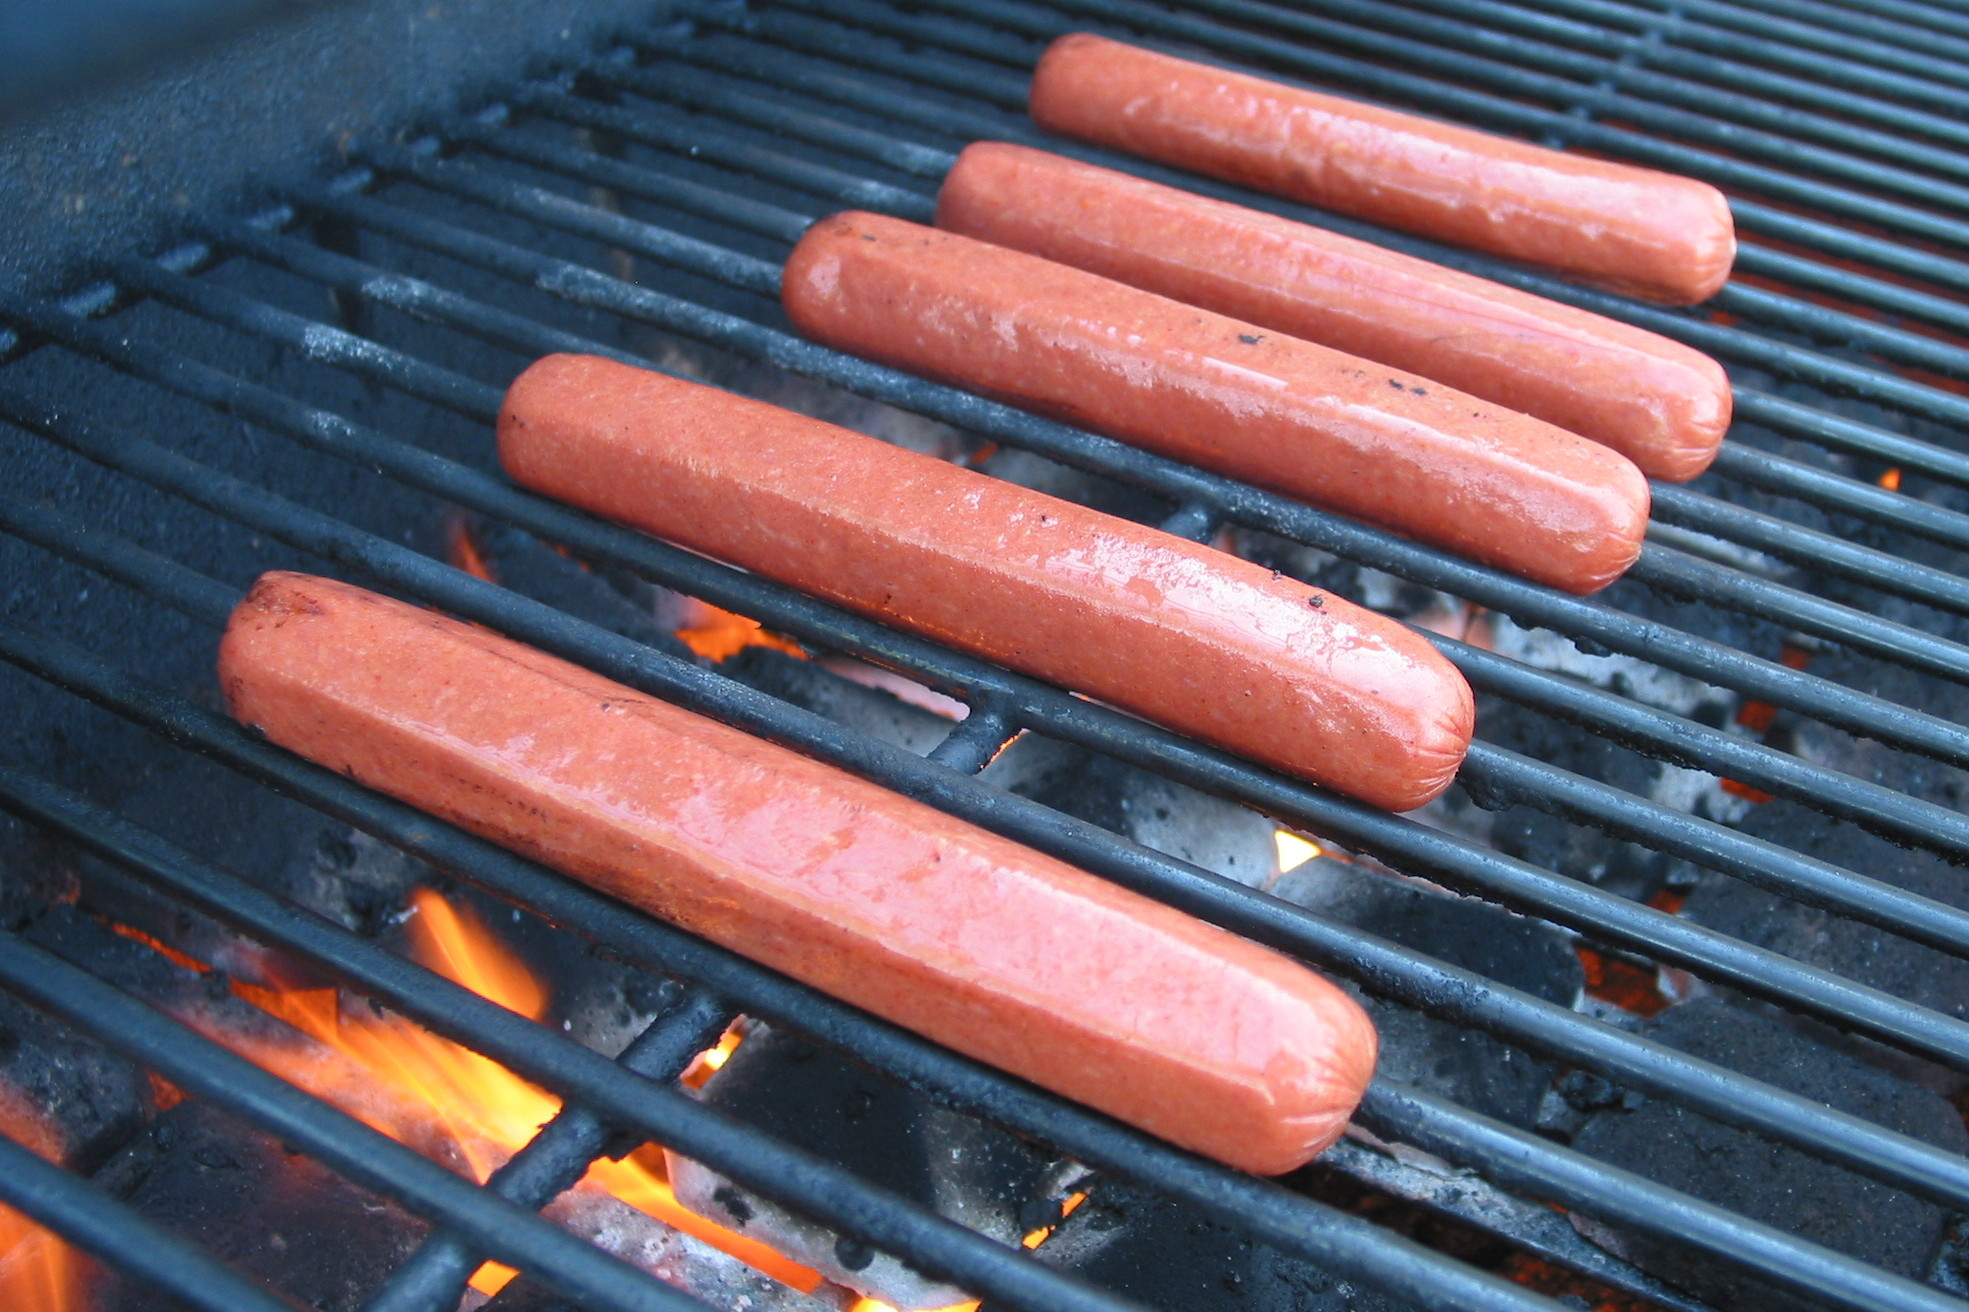 Saucisses a hot dog sur le grill